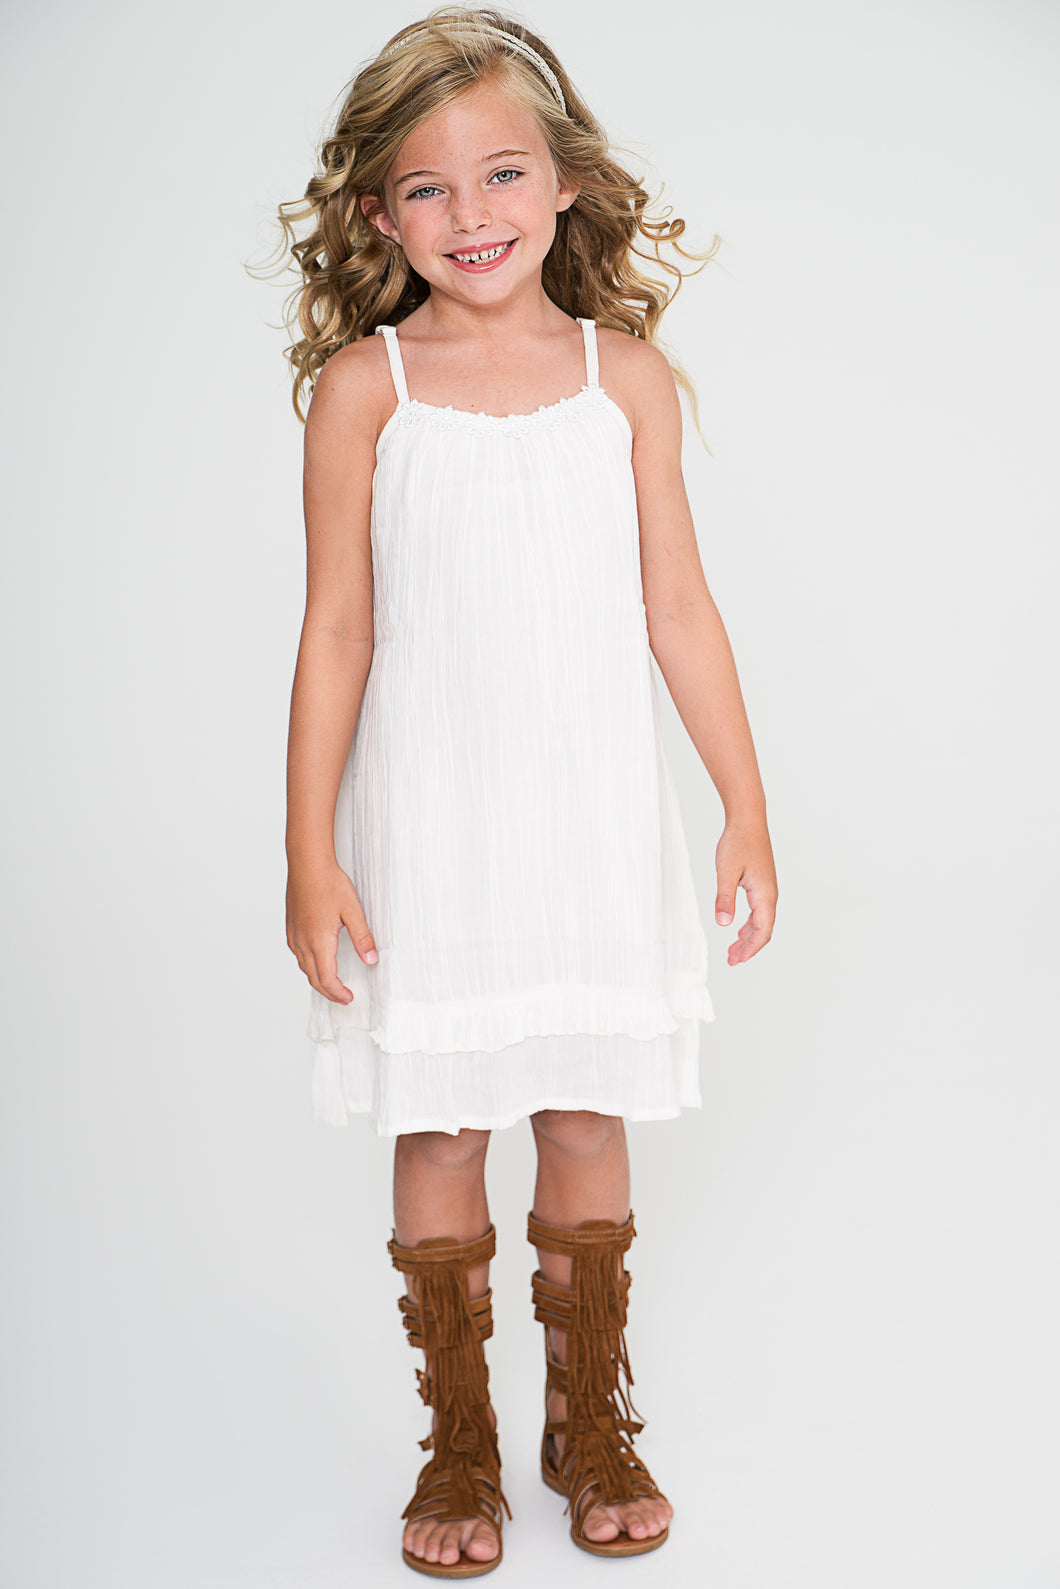 Off-white Flower Lace Detail Strap Dress - Kids Wholesale Boutique Clothing, Dress - Girls Dresses, Yo Baby Wholesale - Yo Baby